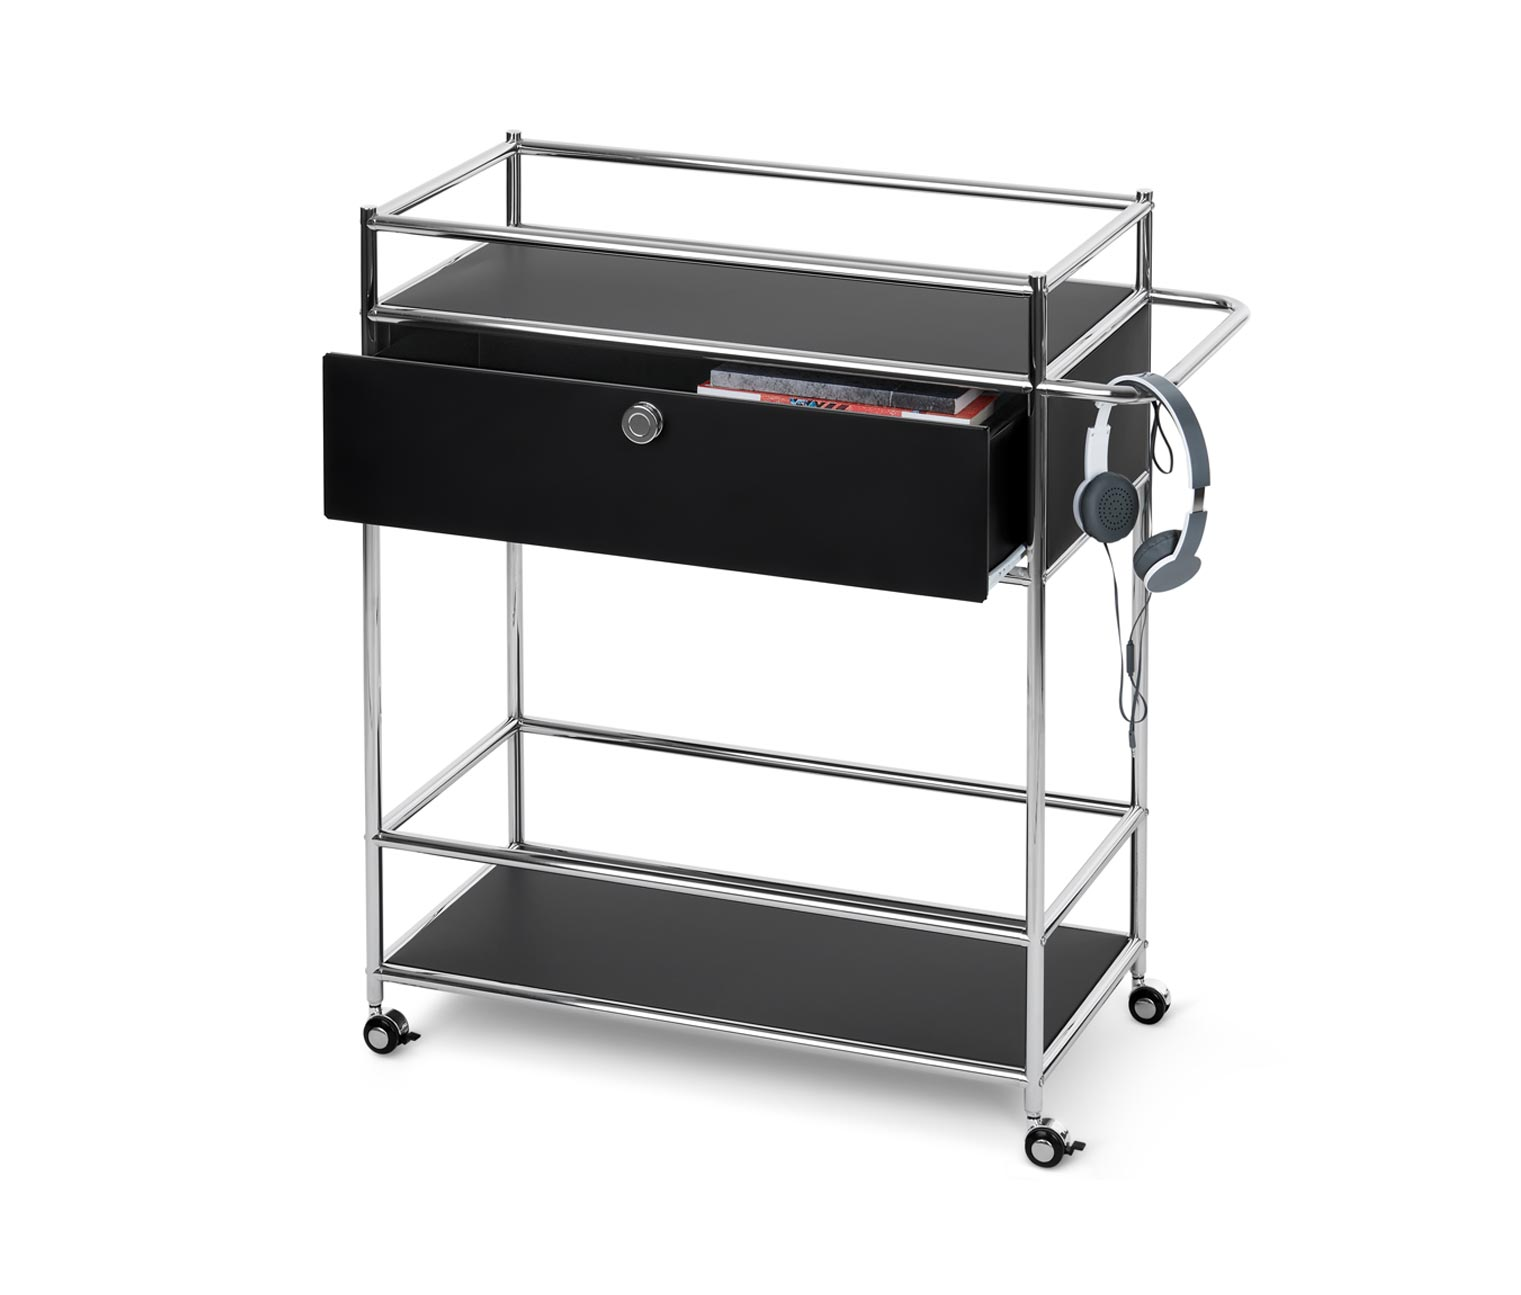 Image of Design-Barwagen aus Metall